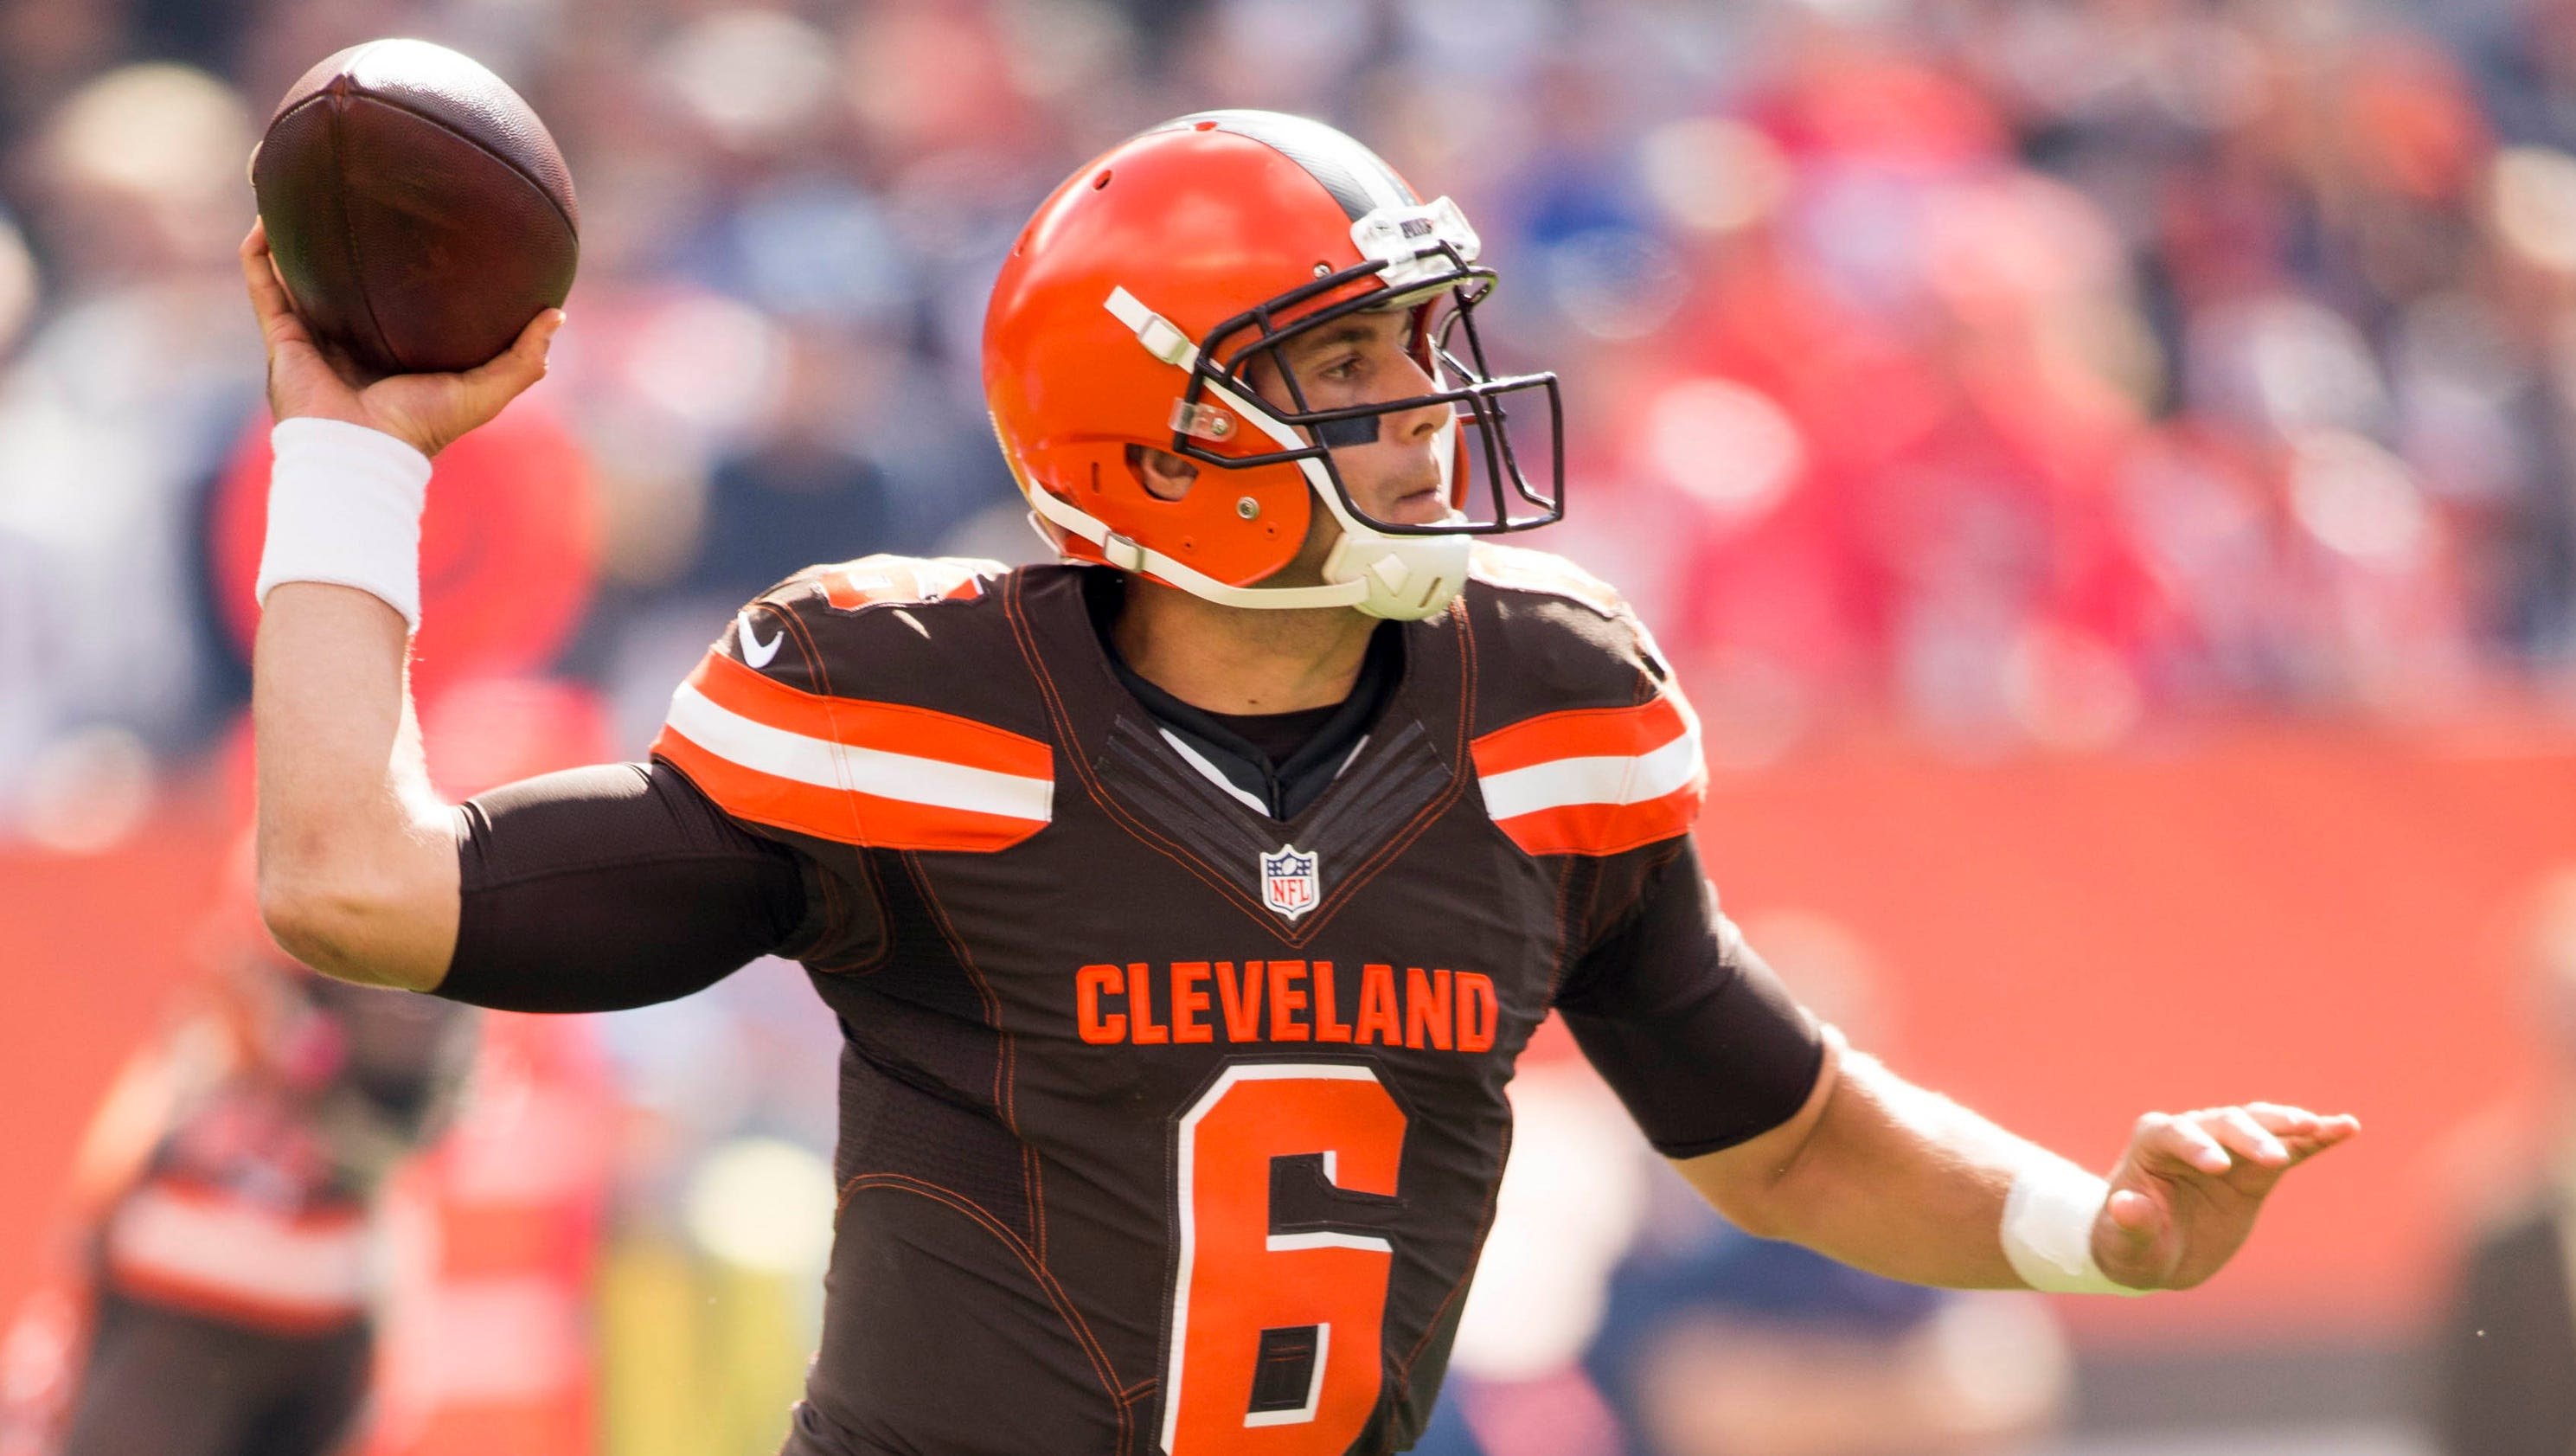 Thursday NFL Buzz: Browns expect QB Cody Kessler to start vs. Titans